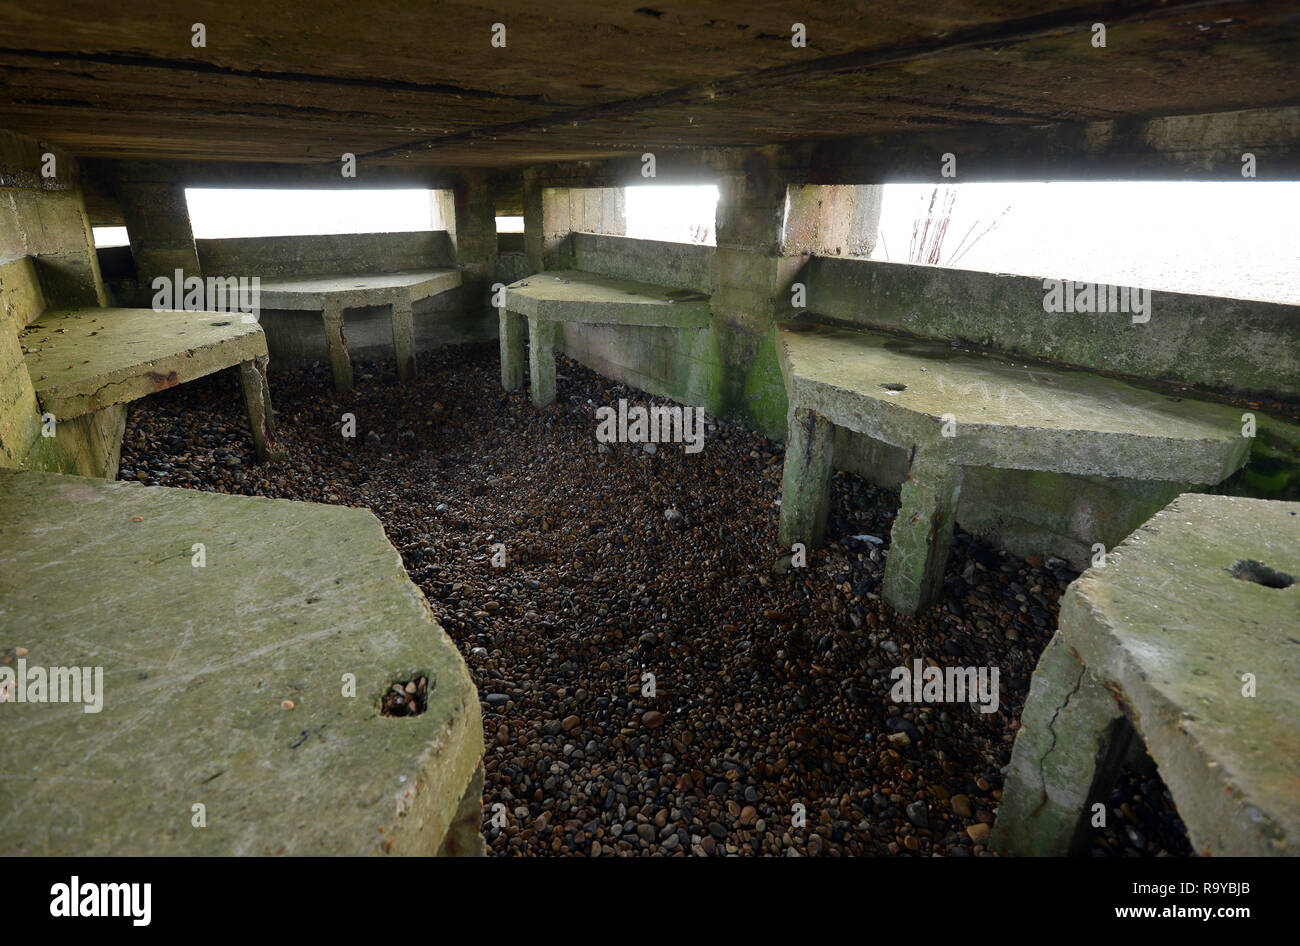 WWII defensive pillbox on Rye beach, East Sussex, UK - Stock Image